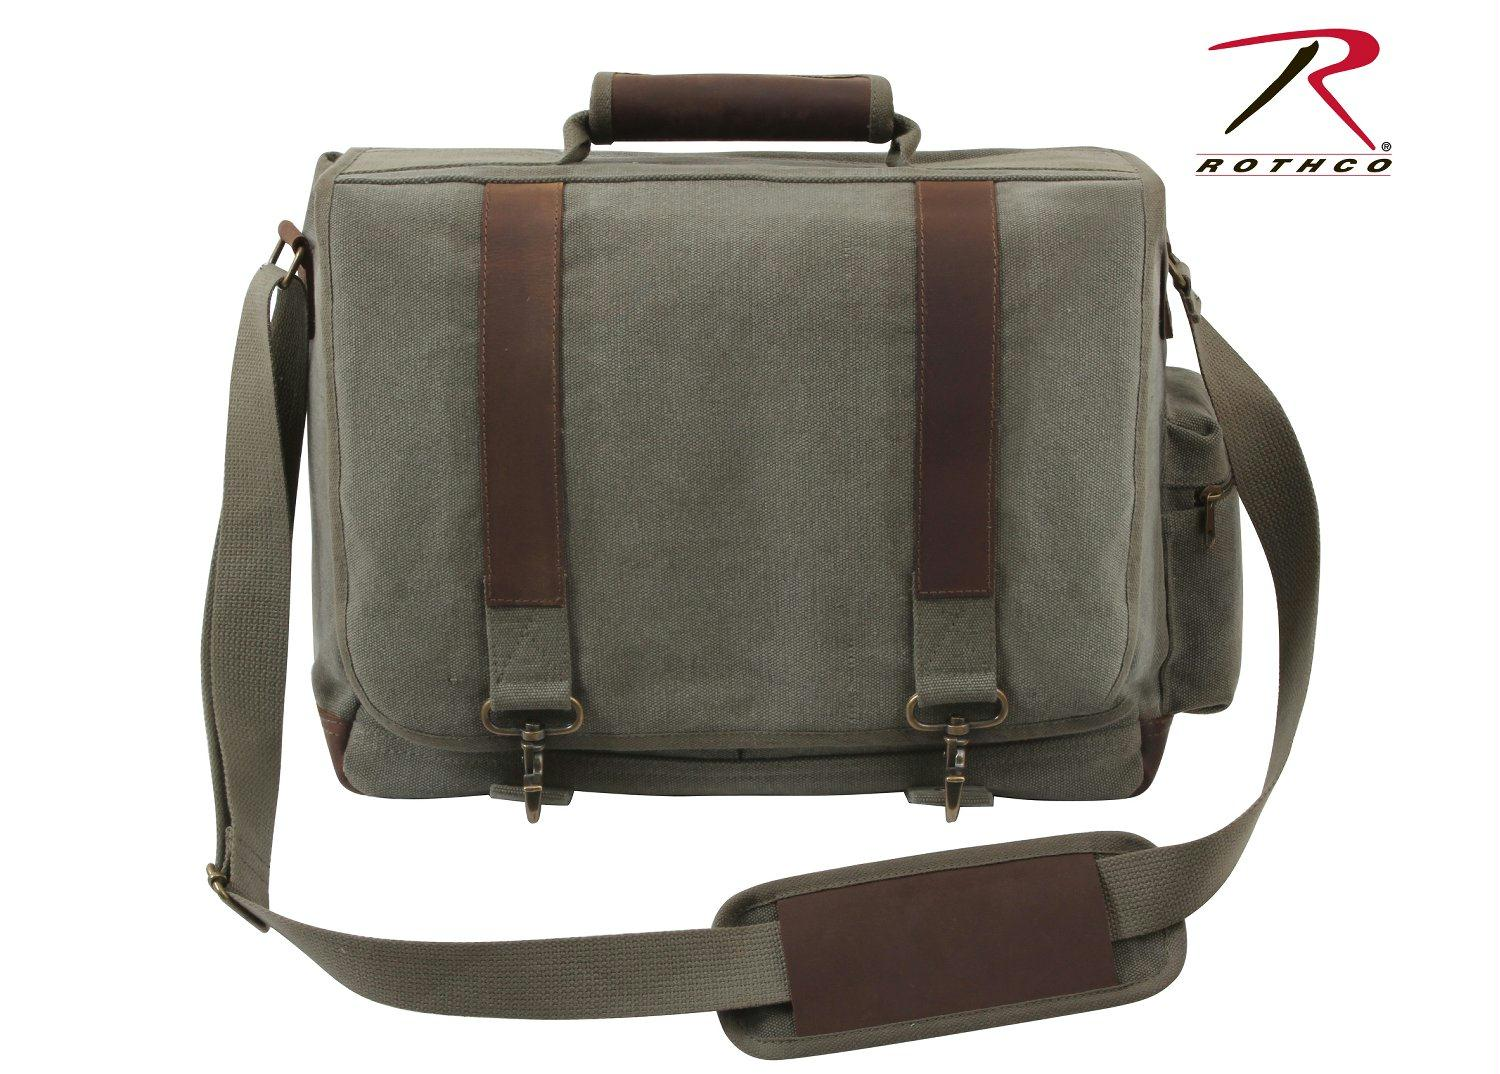 Rothco Vintage Canvas Pathfinder Laptop Bag With Leather Accents - Olive Drab